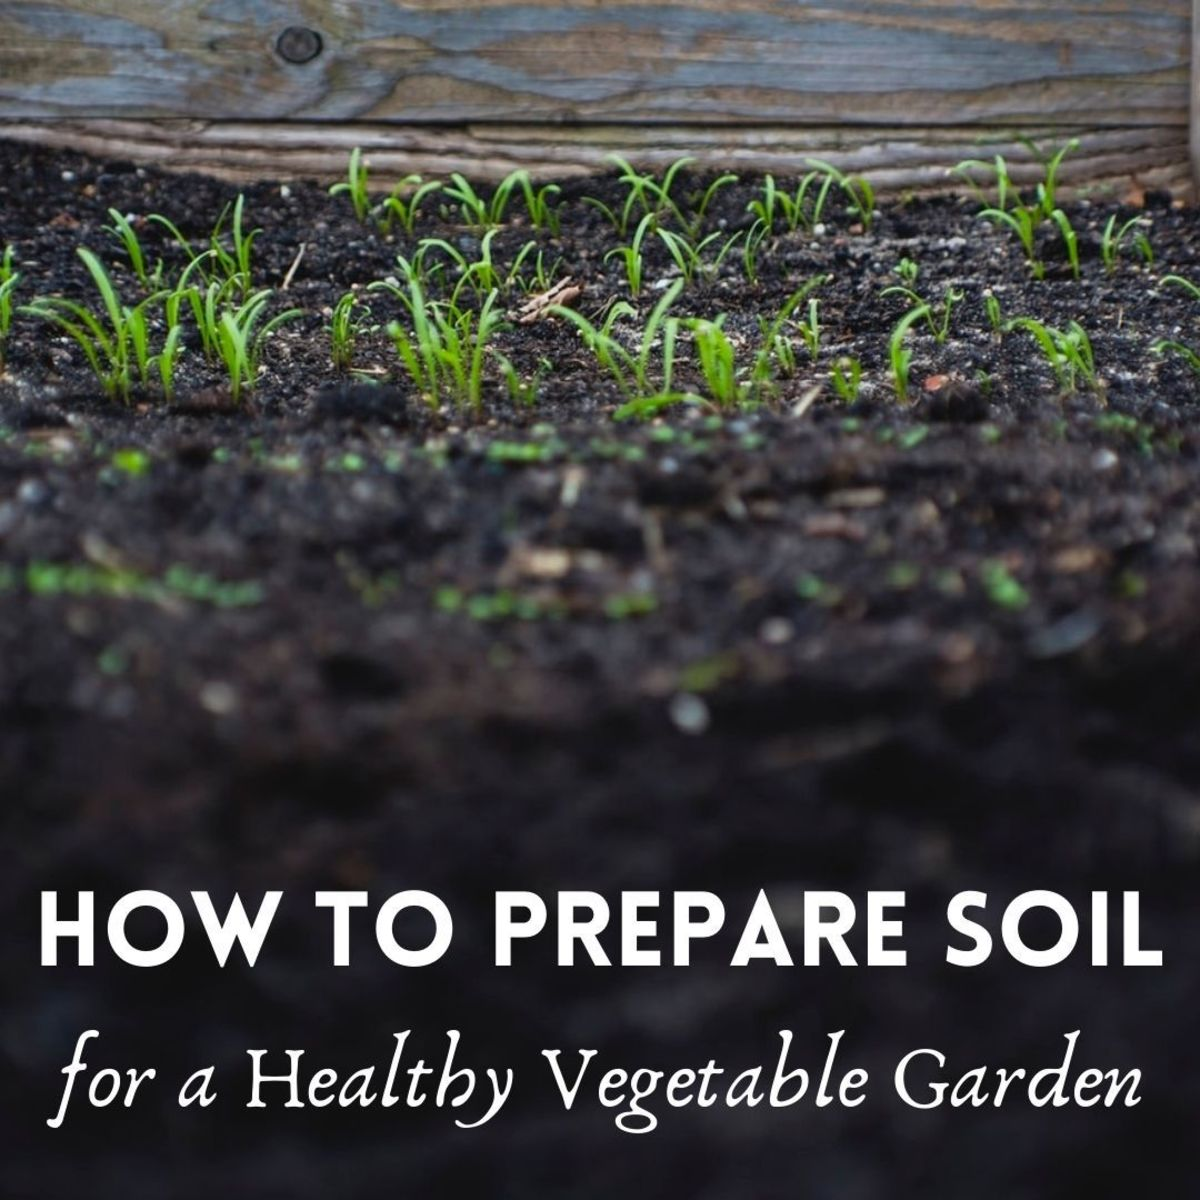 How to Prepare Soil for Planting and Growing a Healthy Vegetable Garden